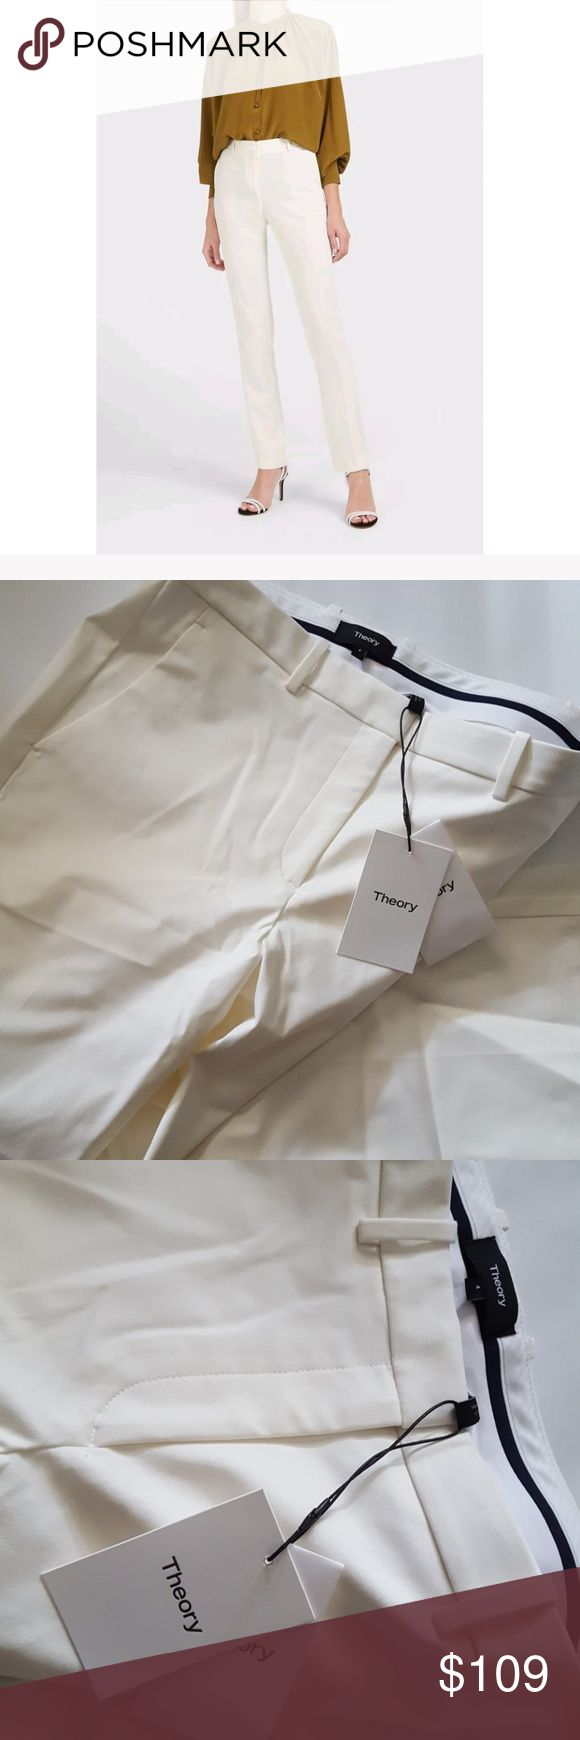 Theory Ivory Hartsdale NP Approach 2 Pants  Sz: 4 New With Tags Theory Ivory Hartsdale NP Approach 2 Pants  Size: 4 Retail 275.00 A solid pant with slant pockets, back button welt pockets and flare leg details to complete your next outfit.  Zip fly with hook-and-bar closure. Theory Pants Straight Leg